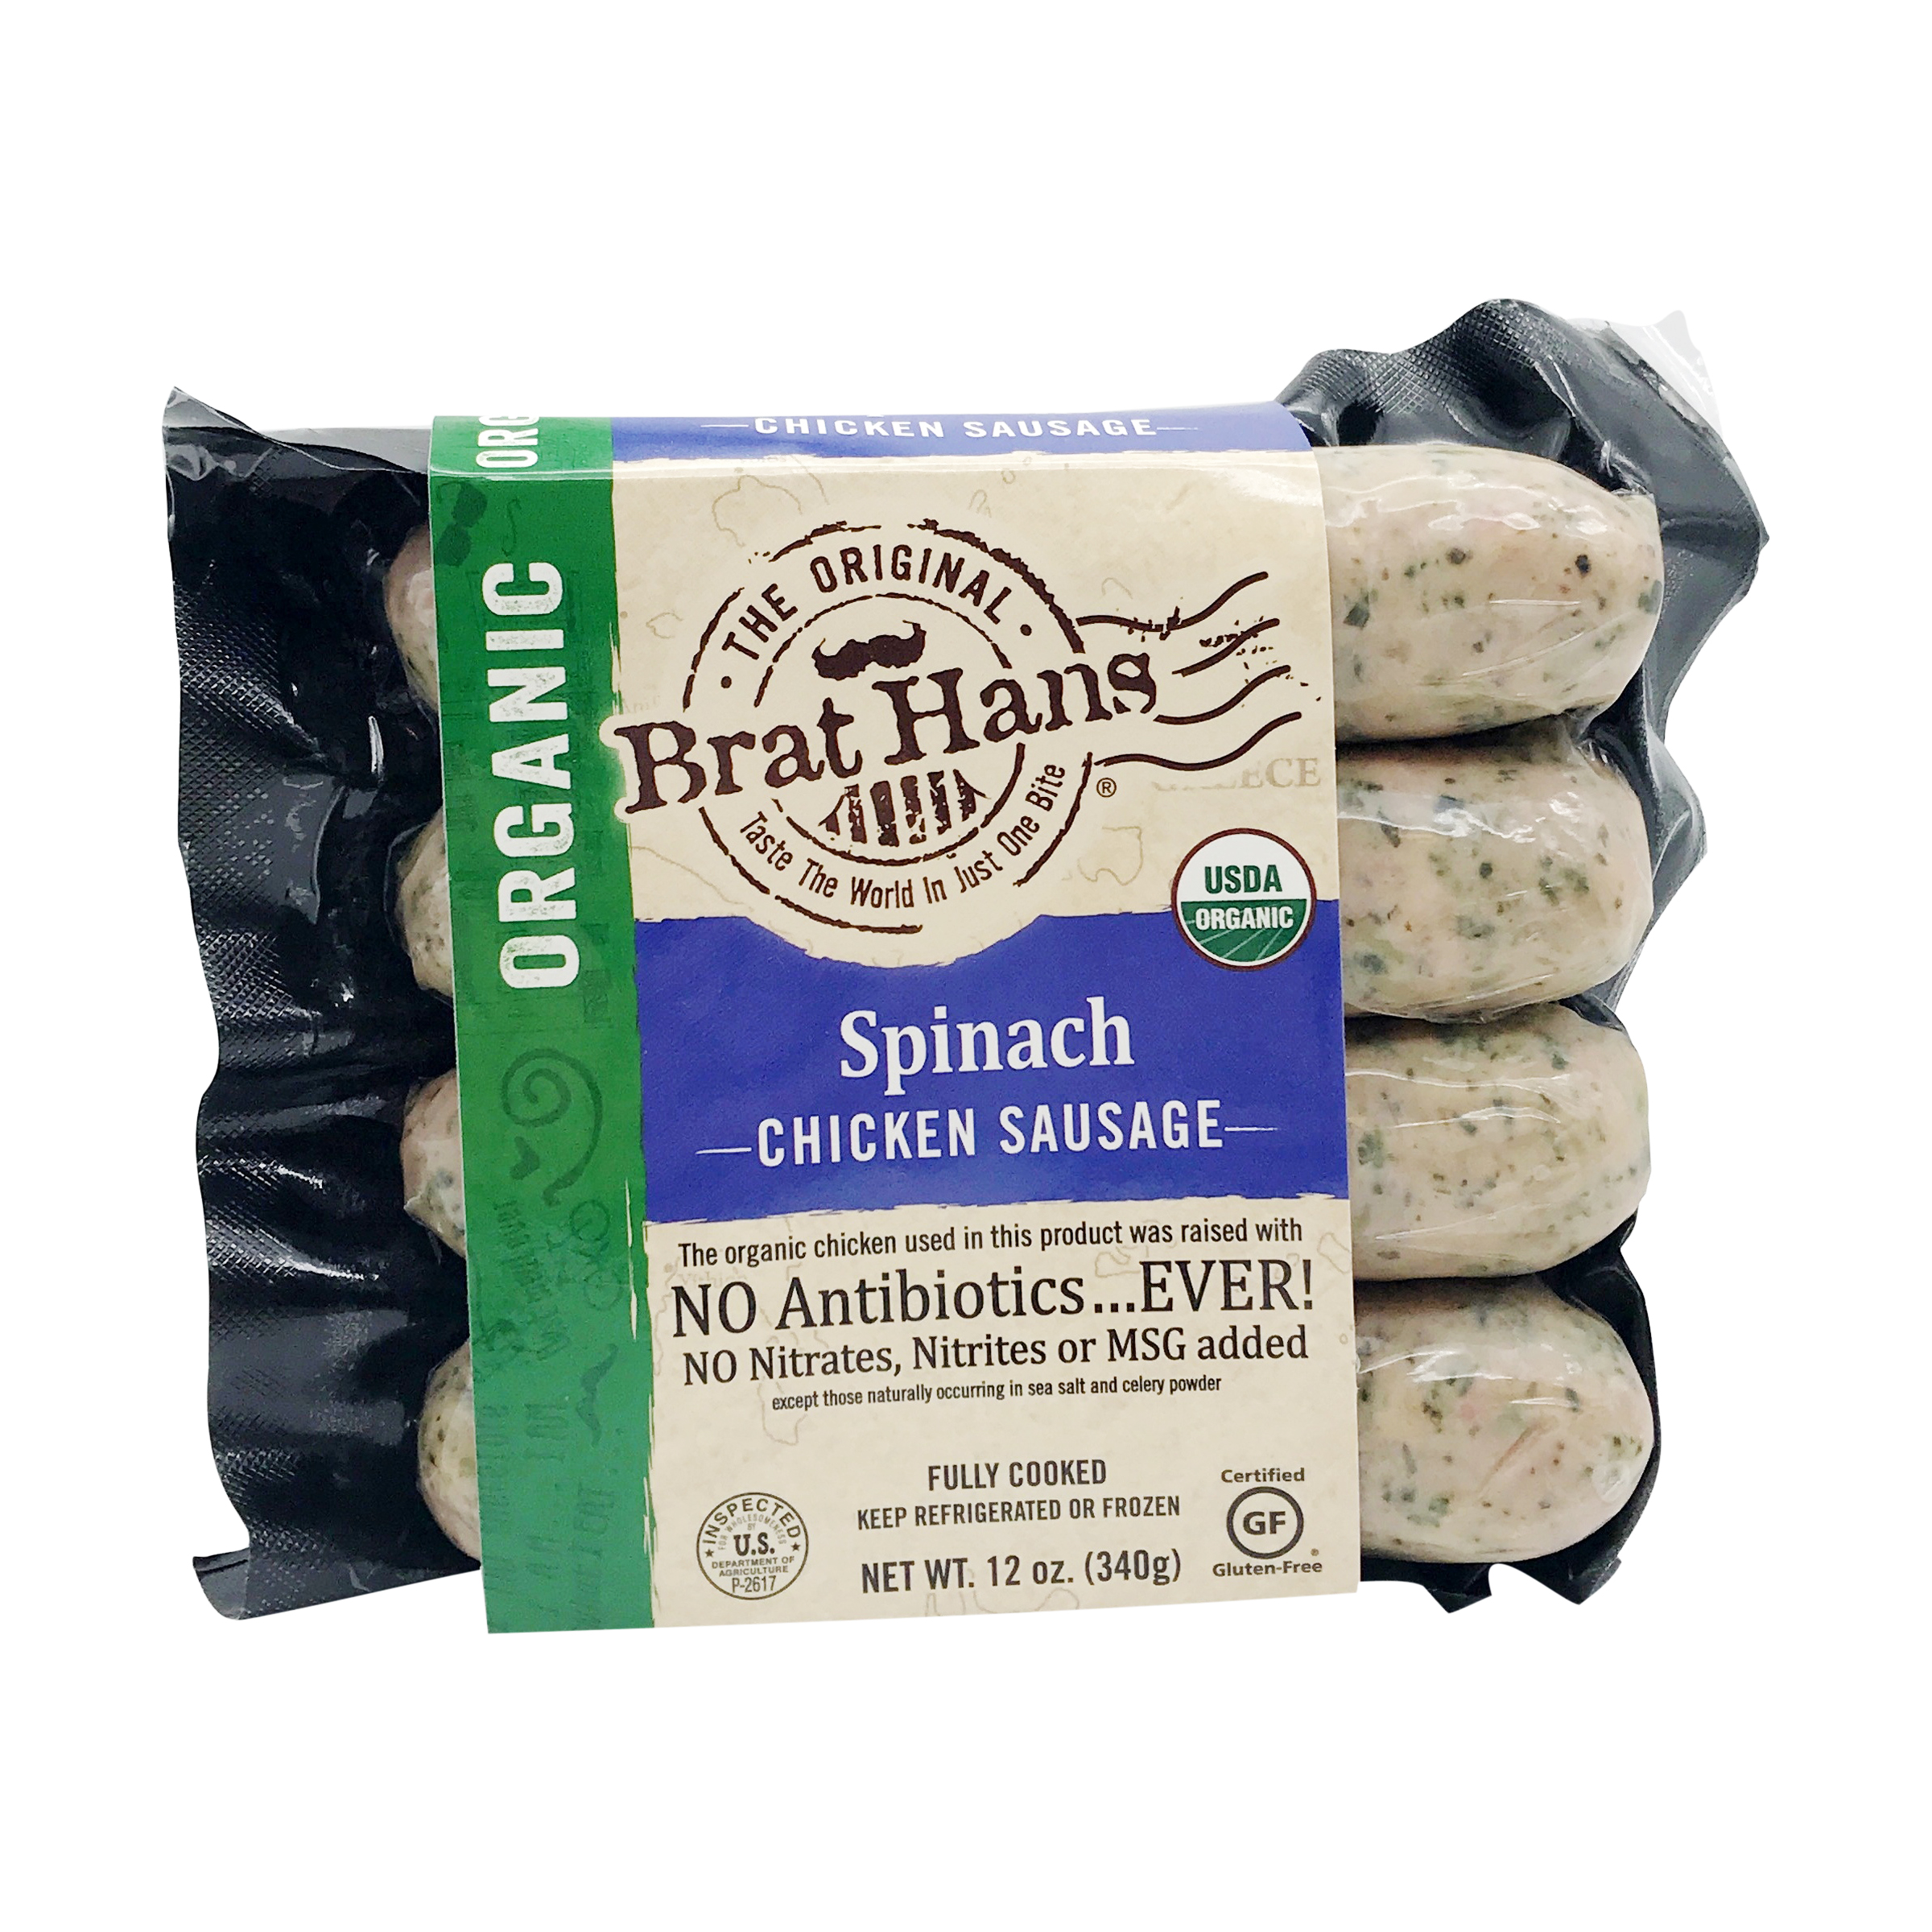 The Original Brat Hans Organic Spinach Chicken Sausage The Original